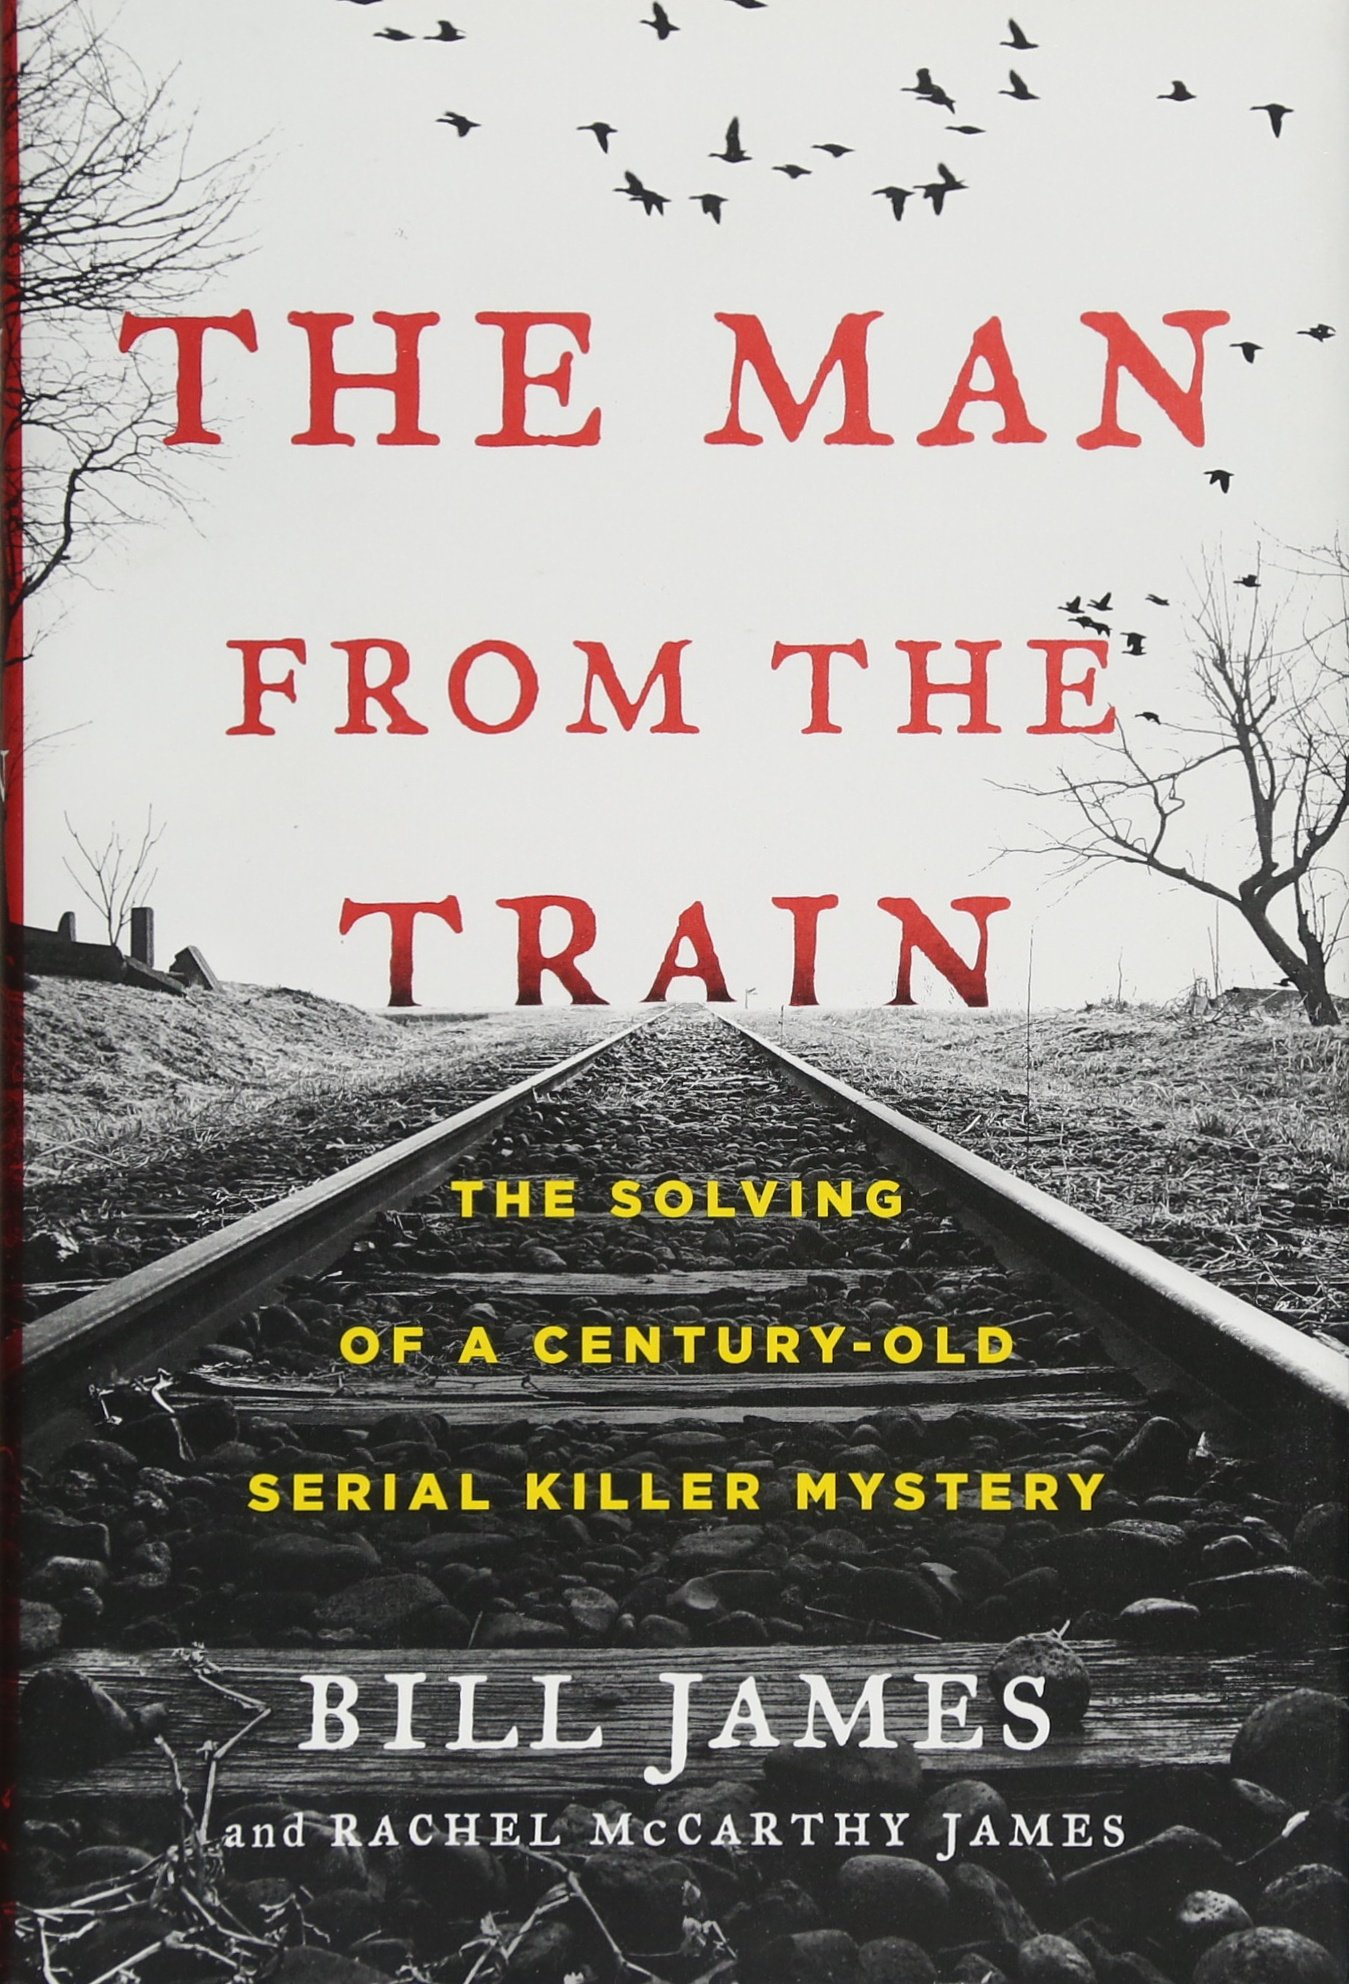 Sample Essays For High School Students The Man From The Train The Solving Of A Centuryold Serial Killer Mystery  Bill James Rachel Mccarthy James  Amazoncom Books Example Of An Essay Paper also Essay On Health Promotion The Man From The Train The Solving Of A Centuryold Serial Killer  Term Papers And Essays